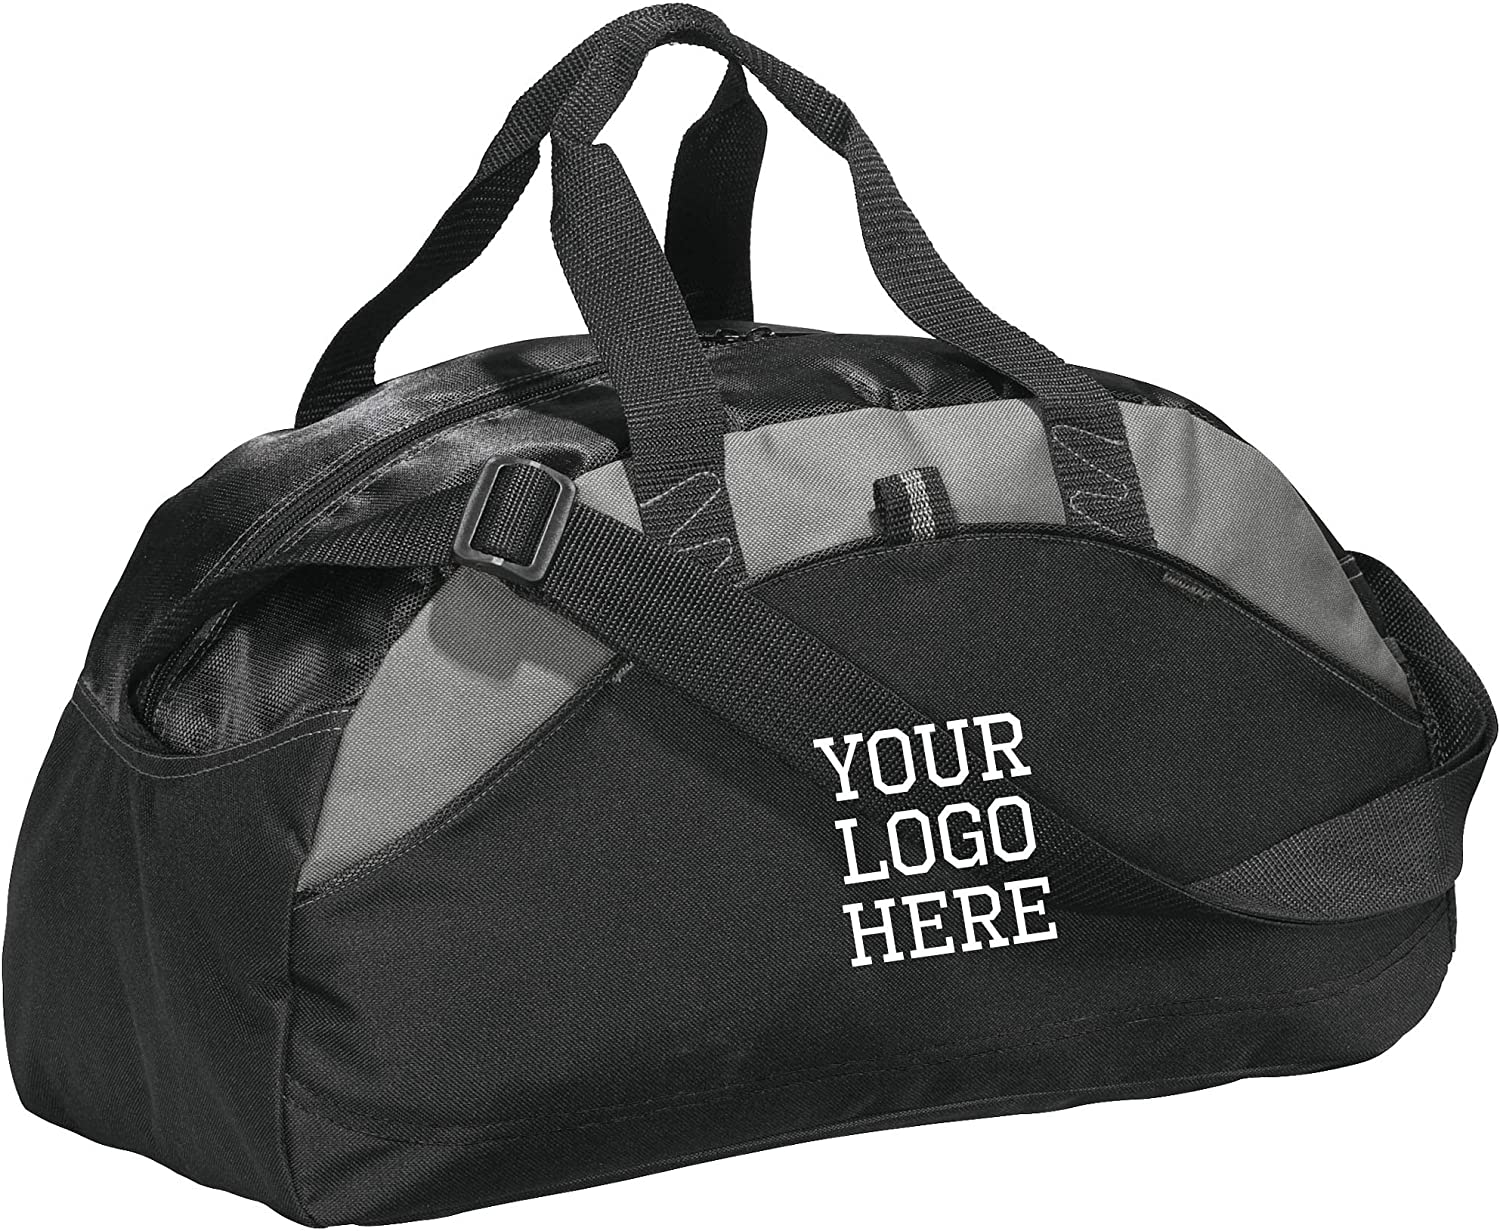 Custom Sport Duffel Bag for Men Women (Contrast Medium) - Add Your Name - Personalized Weekender Bag for Gym, Overnight, Travel